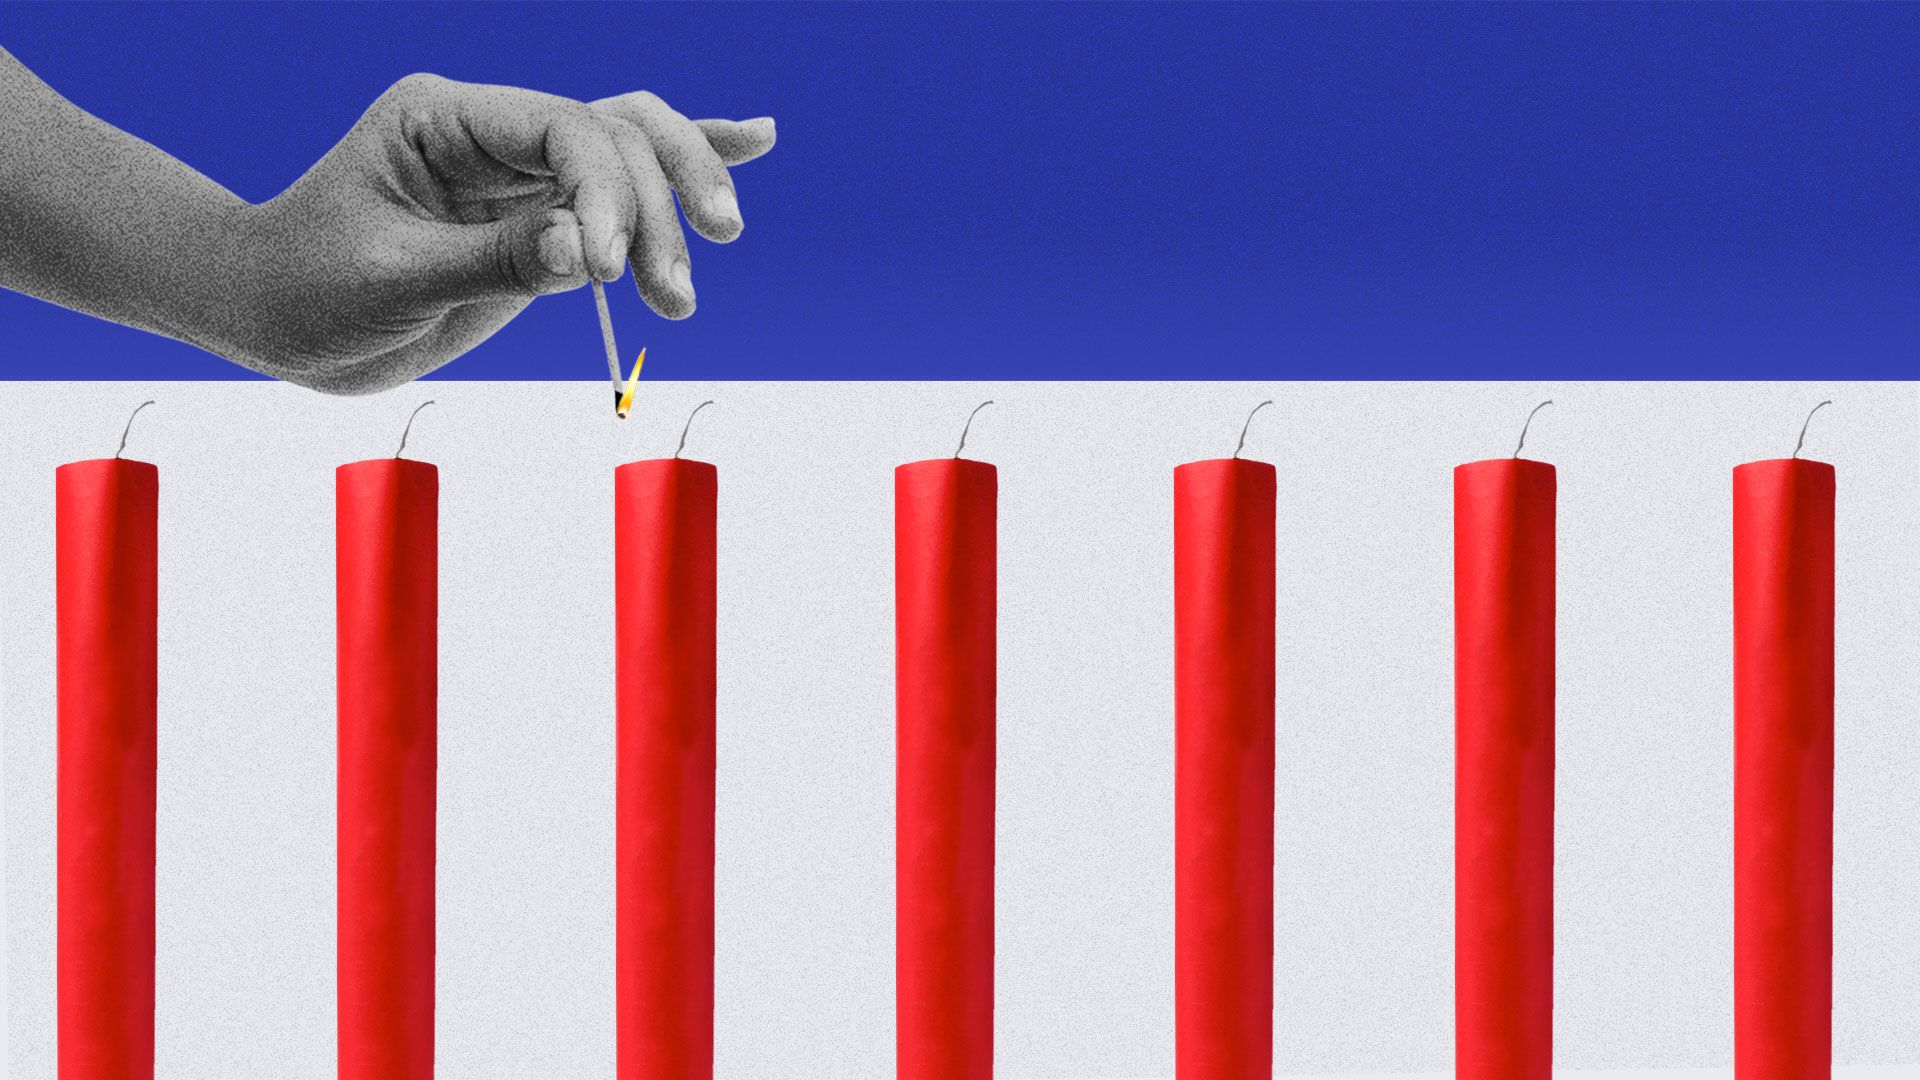 Illustration of red sticks of dynamite on a blue and white background about to be lit with a match.